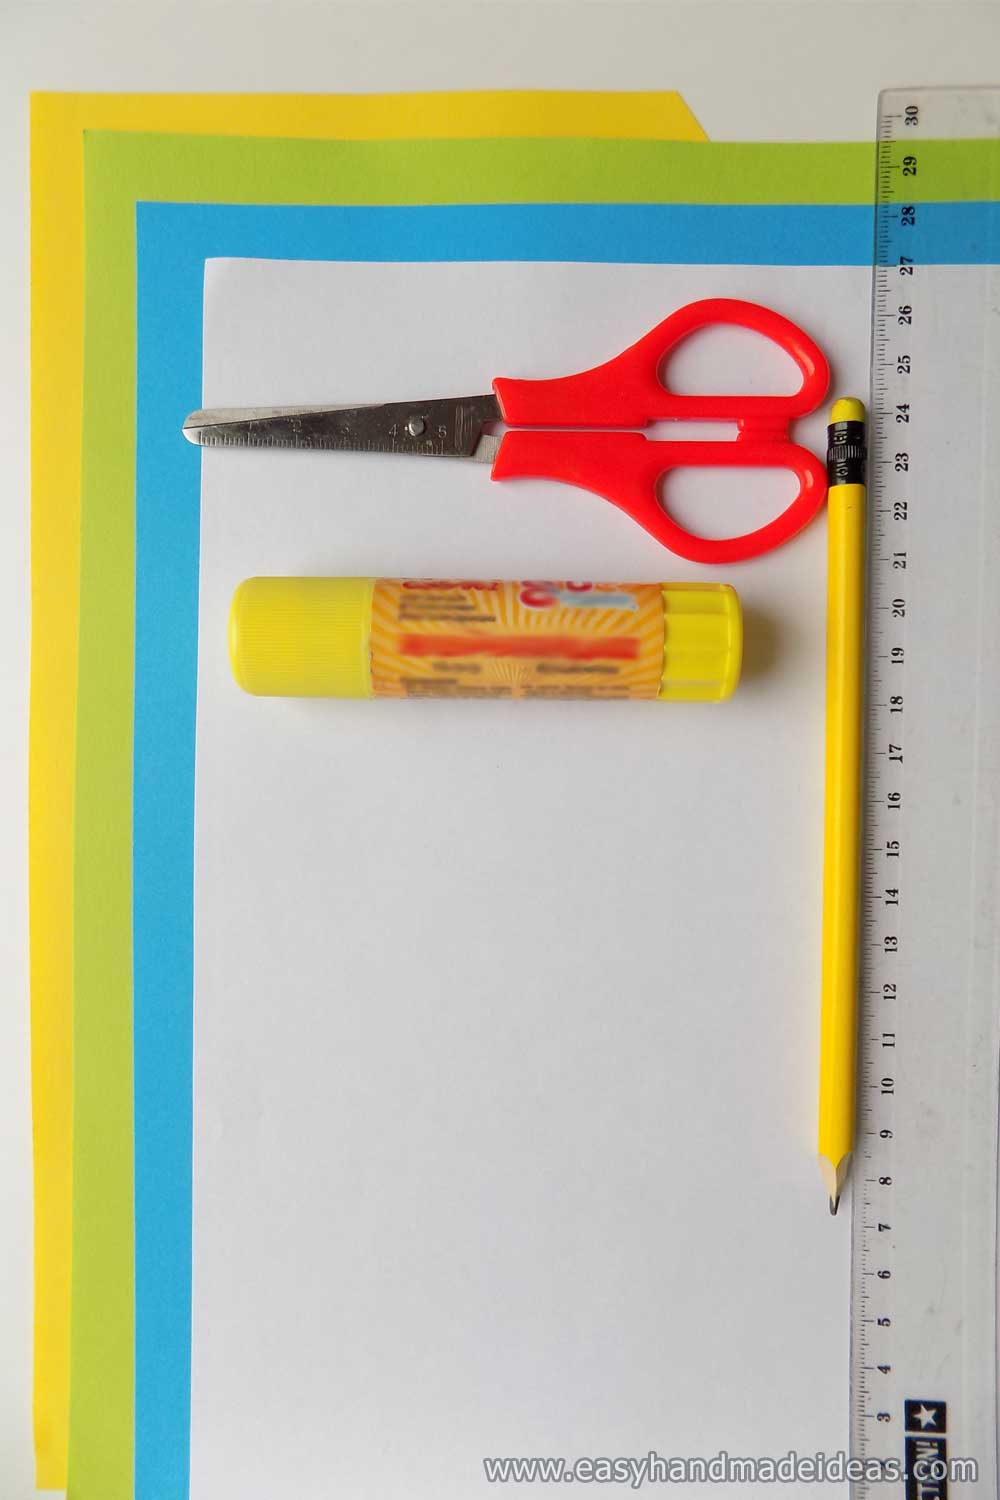 Materials and Tools for Paper Daffodils